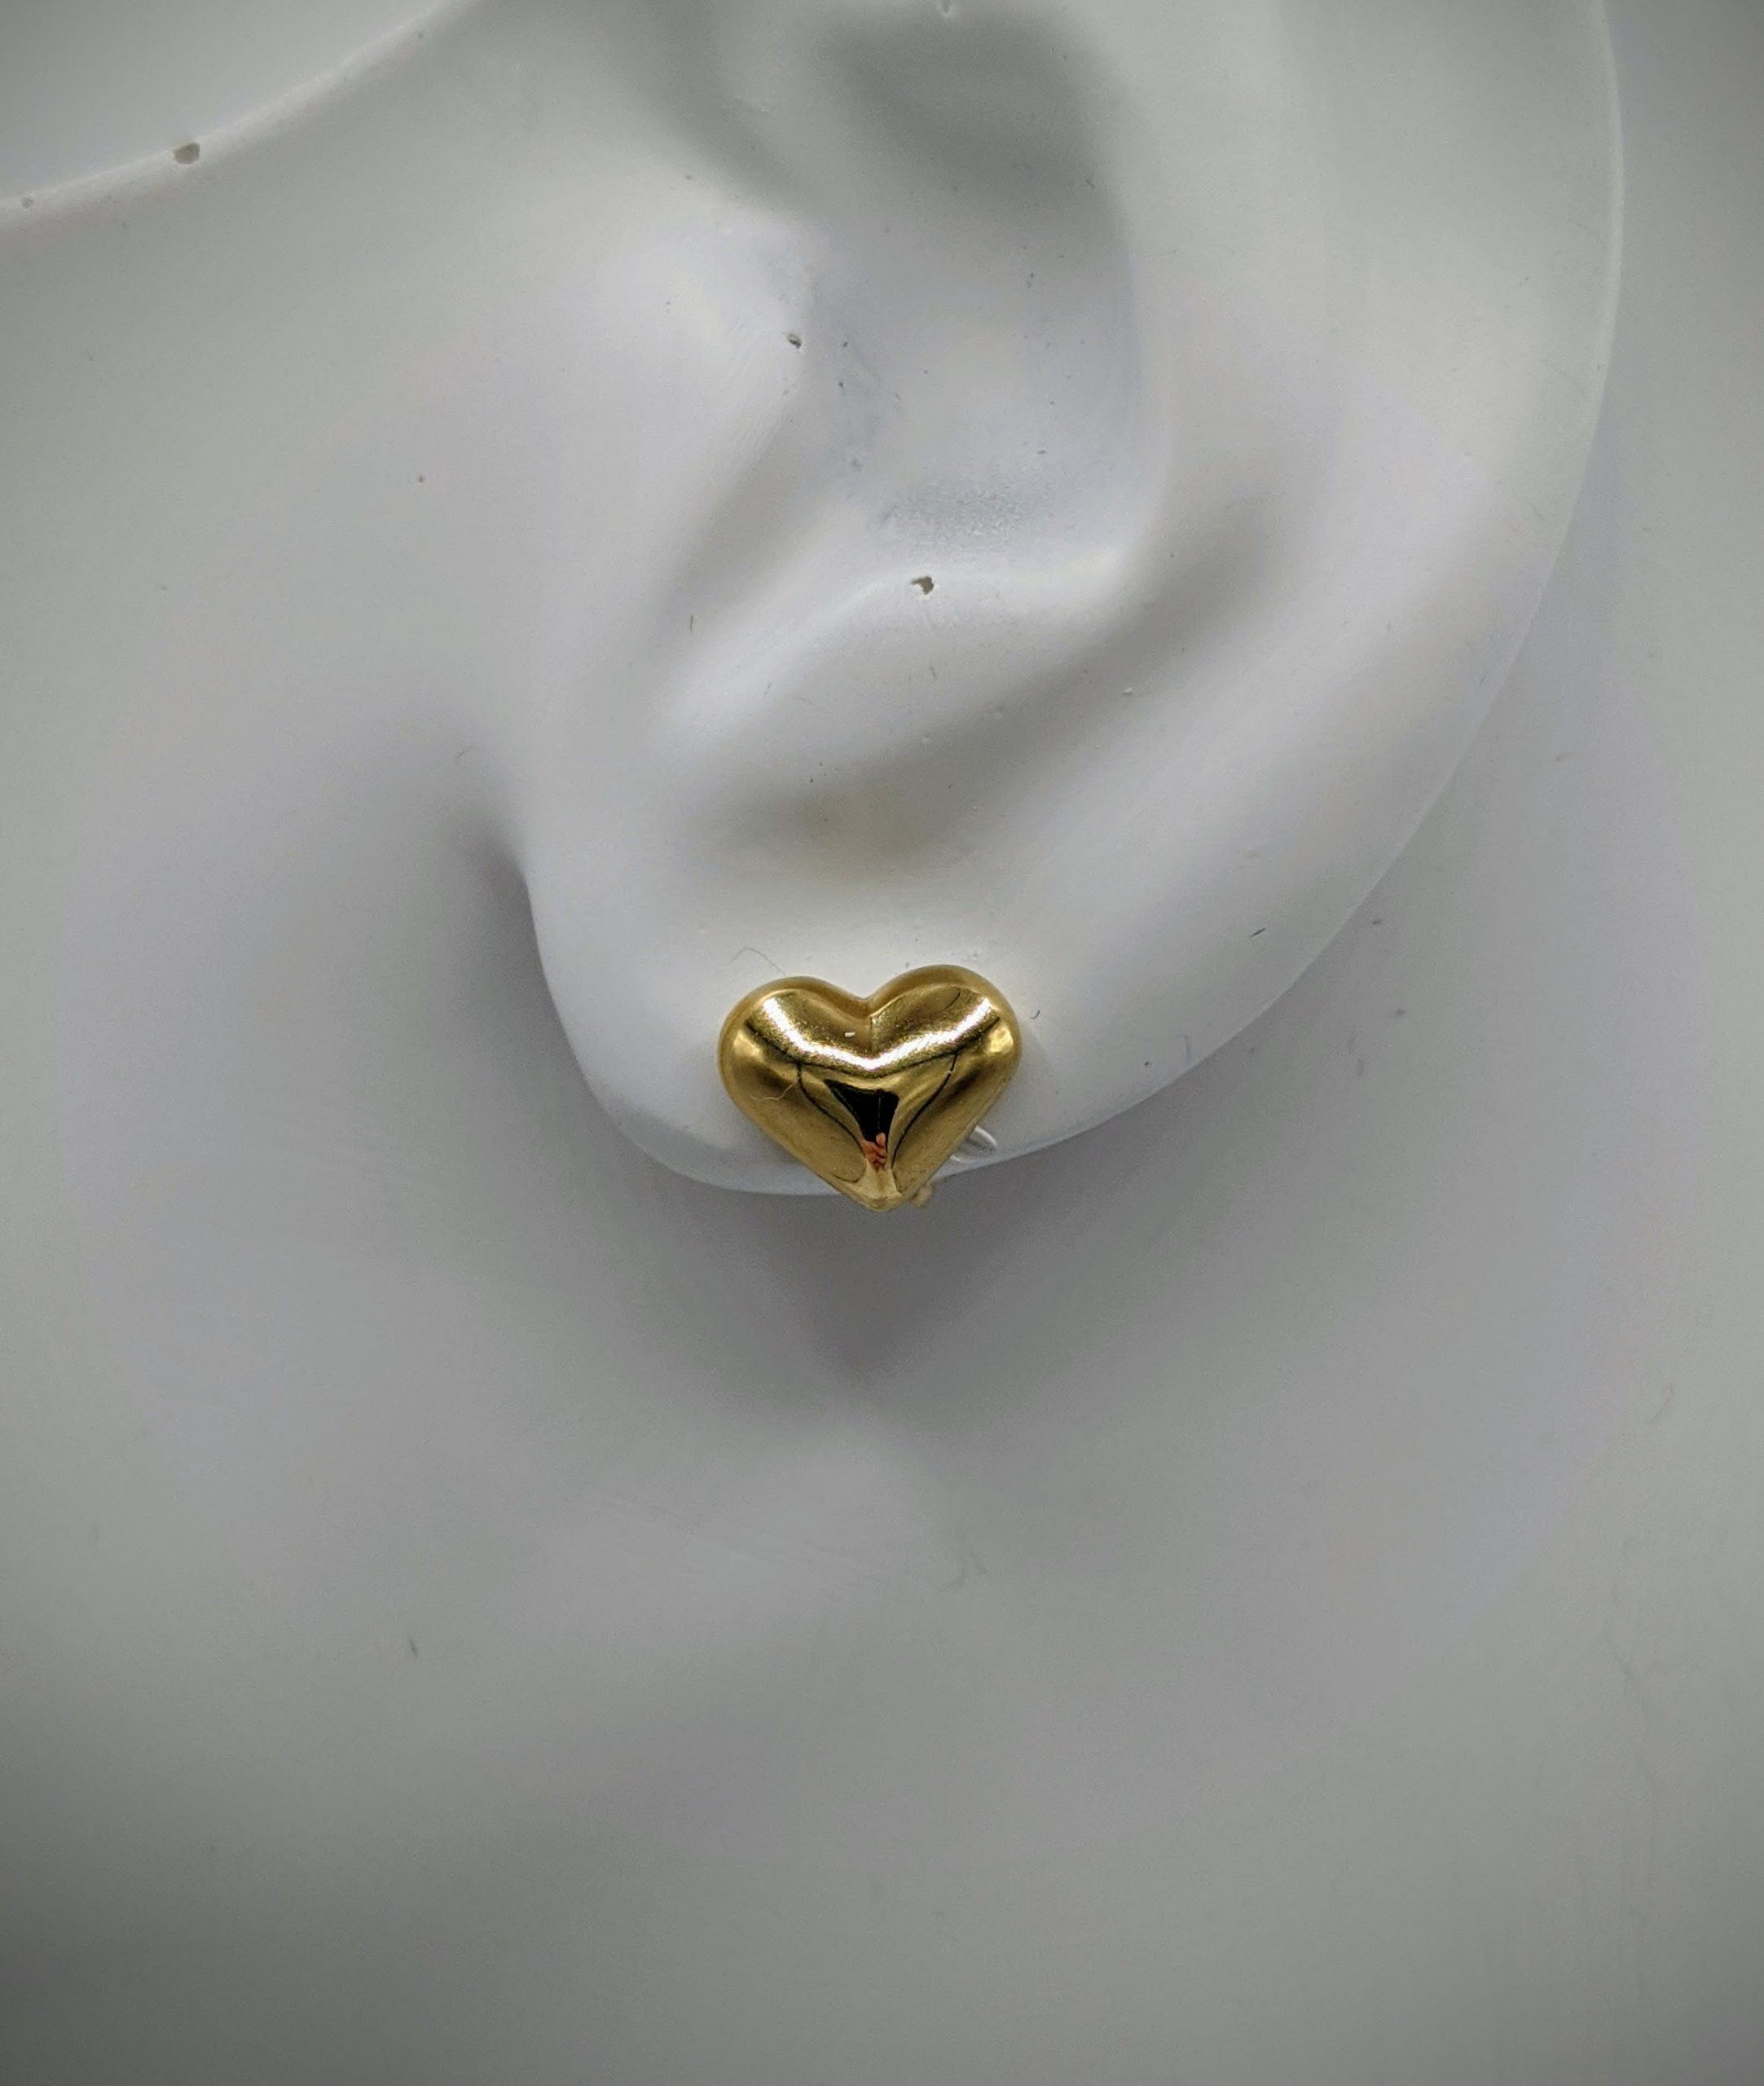 Ladies Light Weight 14kt Yellow Gold 3 Dimensional Puffed Heart Stud Earring (10mm)